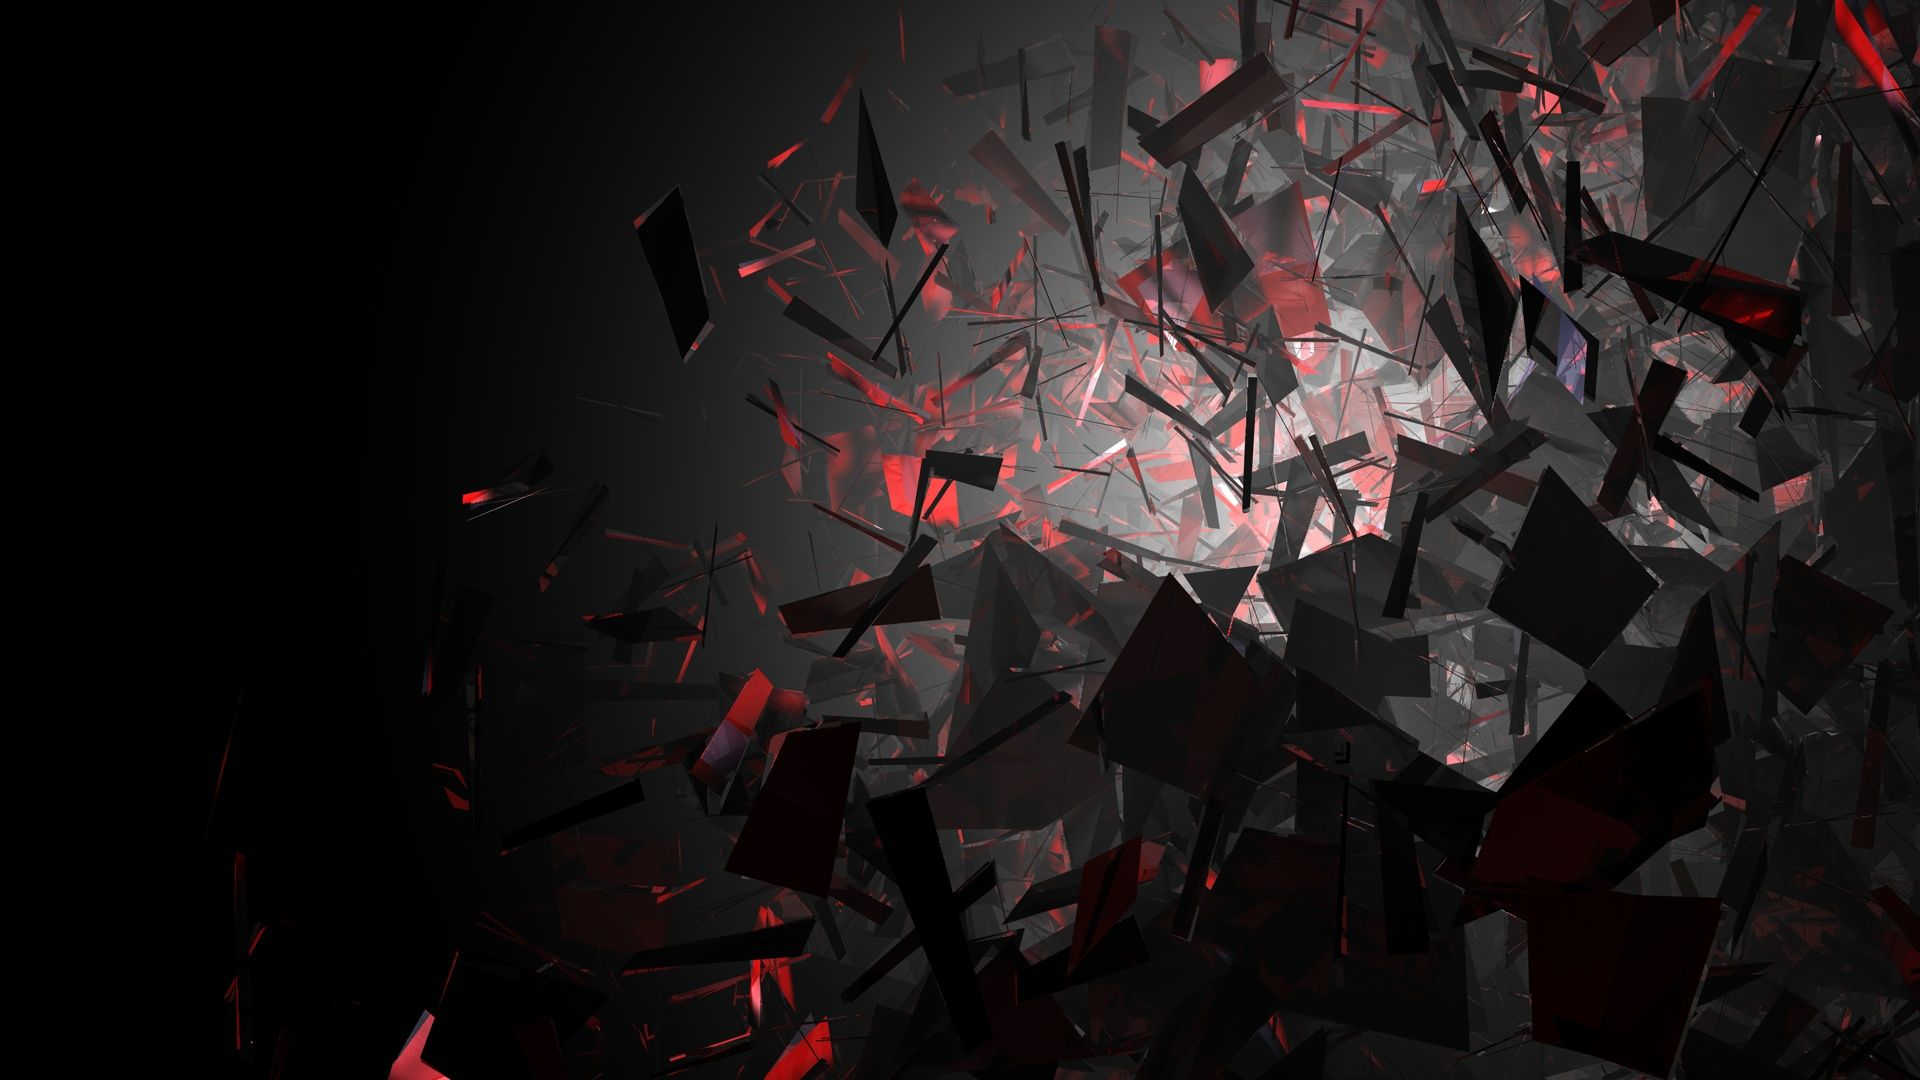 Awesome Dark Abstract Hd Wallpaper Tags Categories Wallsev Com Download Free Hd Wallpapers Red And Black Wallpaper Red Wallpaper Dark Wallpaper